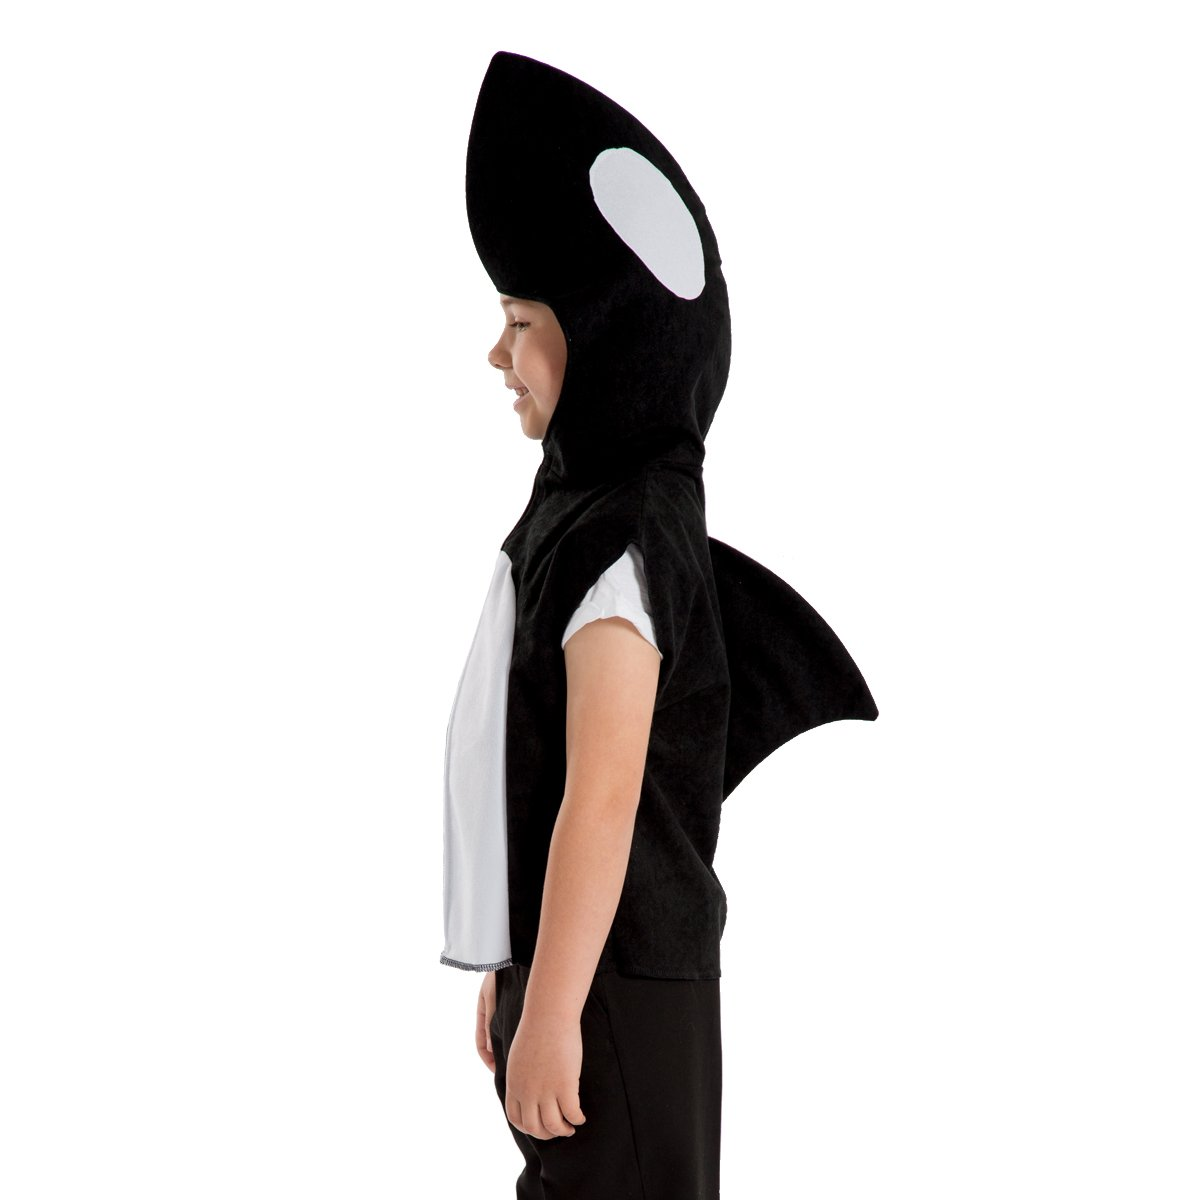 Charlie Crow Whale/Orca Costume for Kids one Size 3-8 Years Black and White